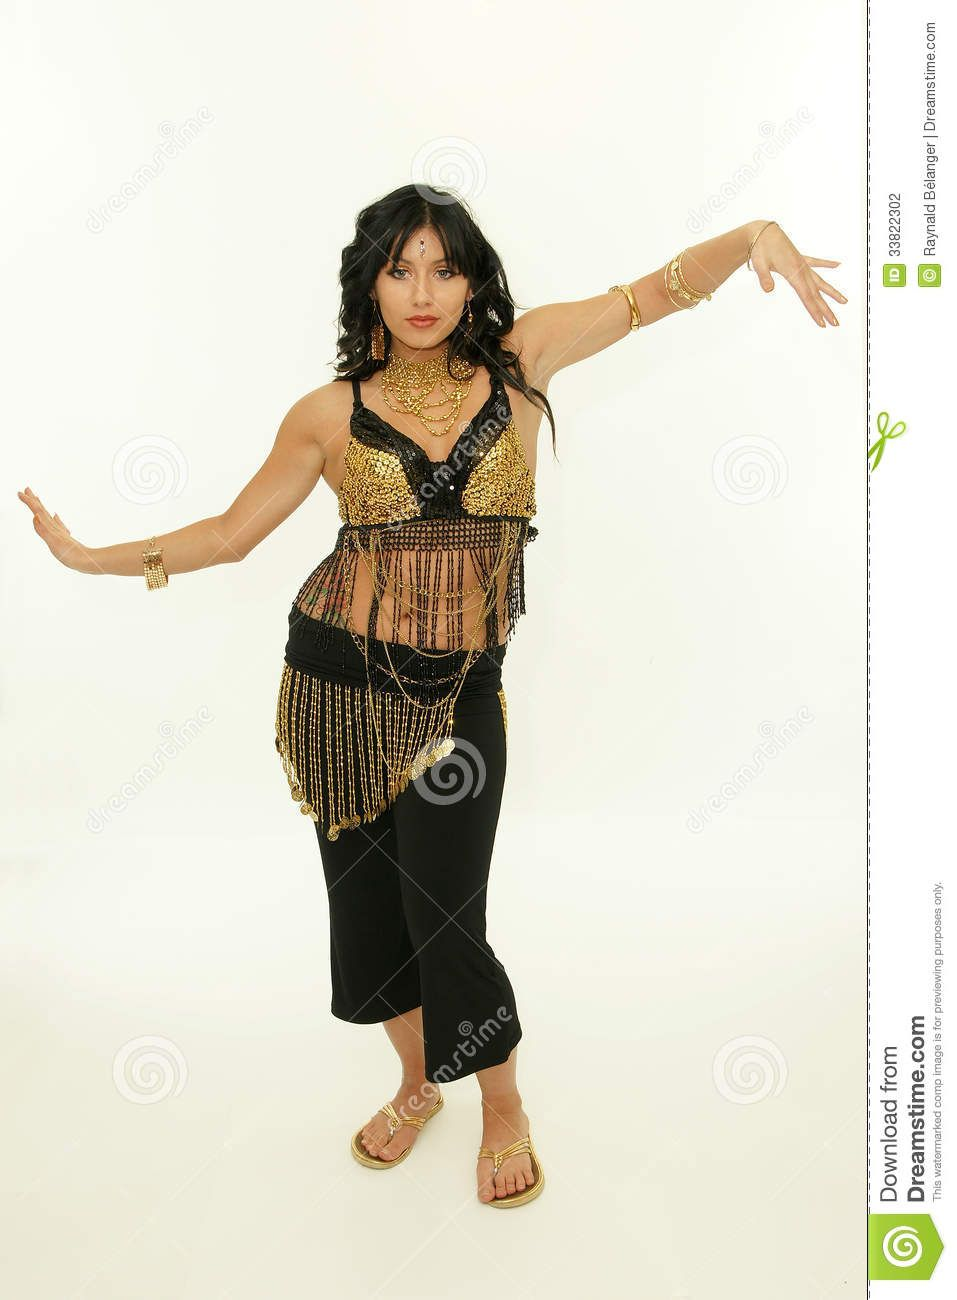 Exotic Woman Dance - Download From Over 47 Million High Quality ...